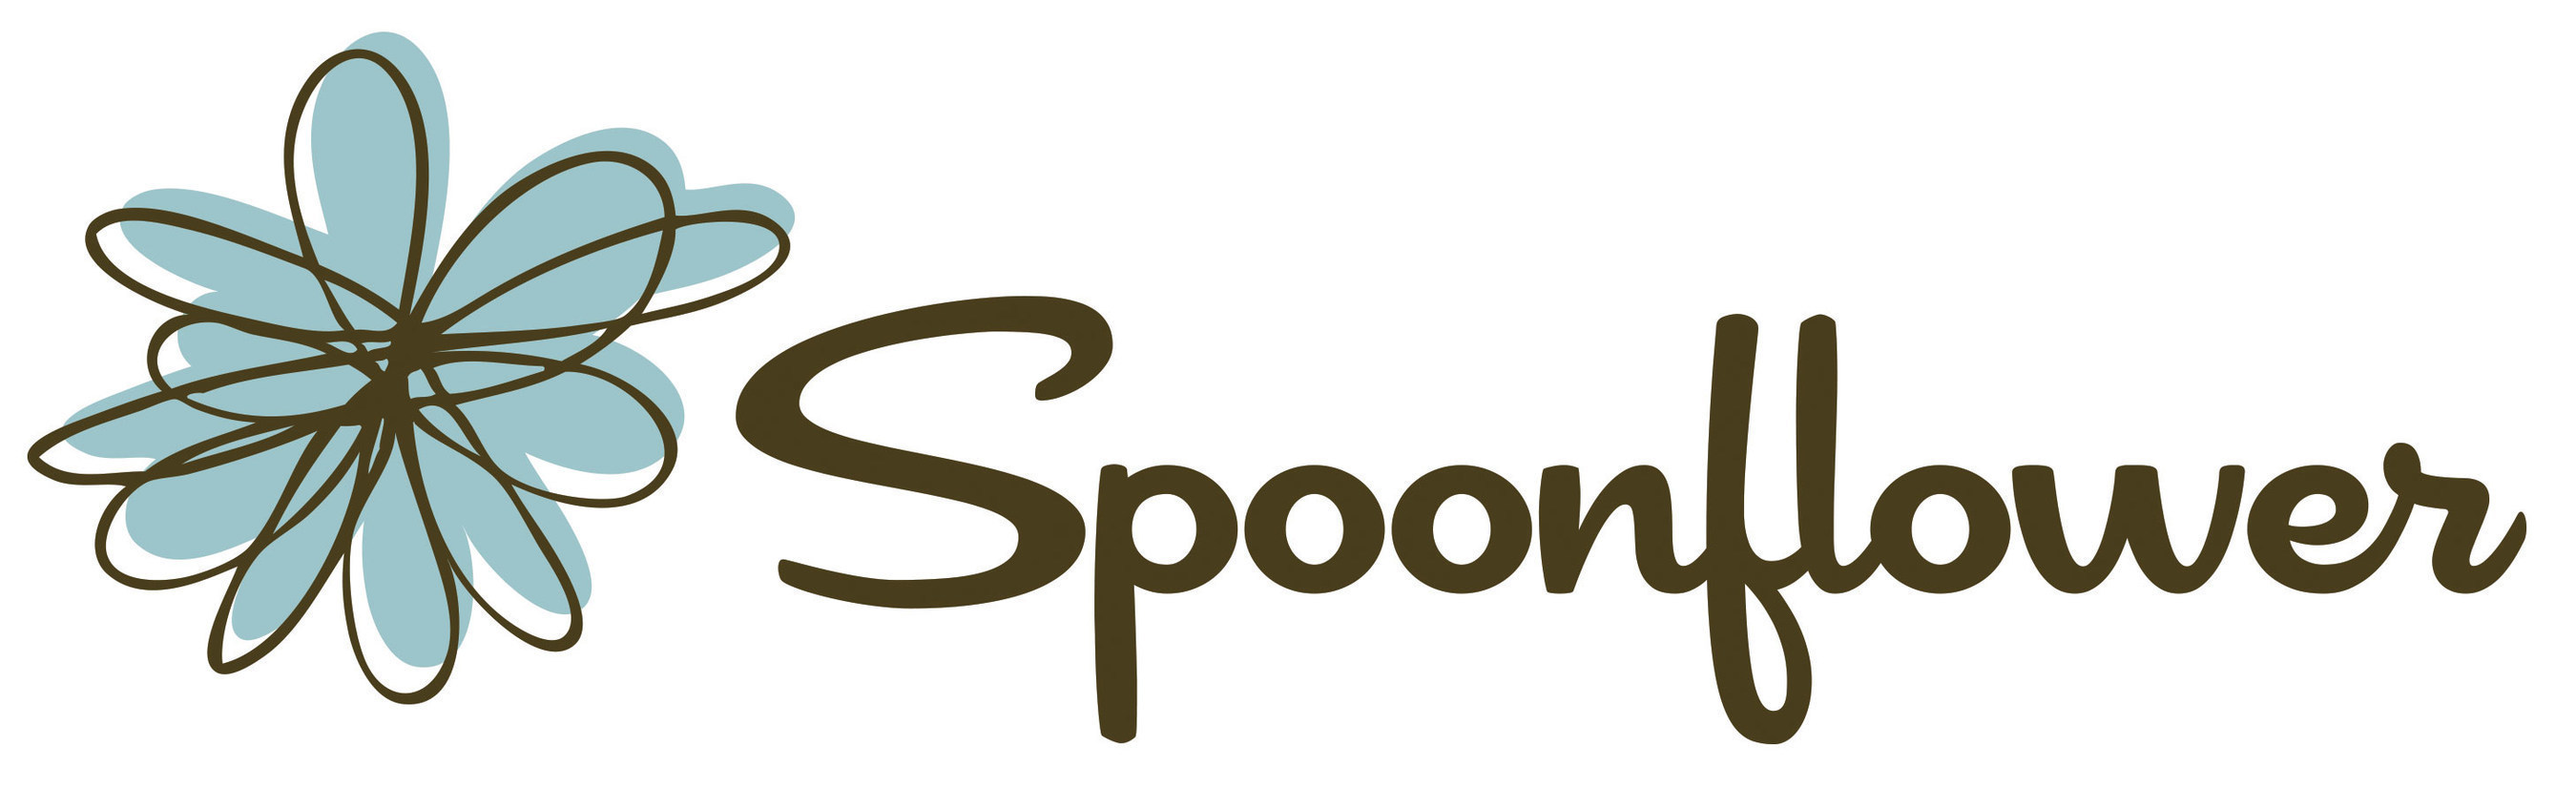 Spoonflower (www.spoonflower.com) lets individuals create and sell their own designs on fabric, wallpaper and ...